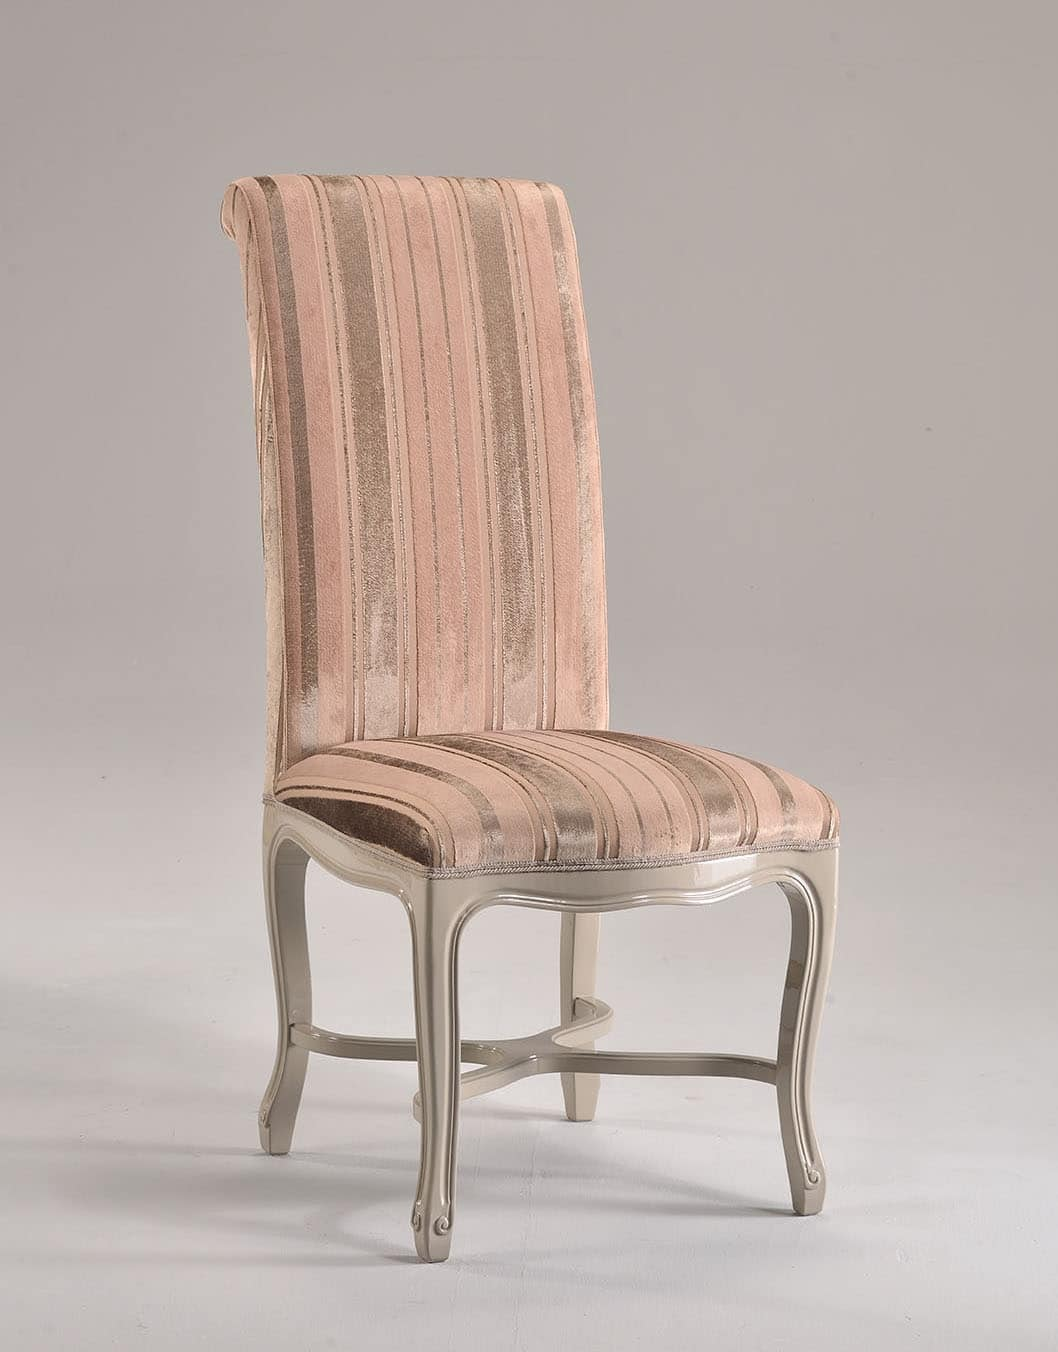 SISSI chair 8491S, High-backrest chair, upholstered with wooden structure